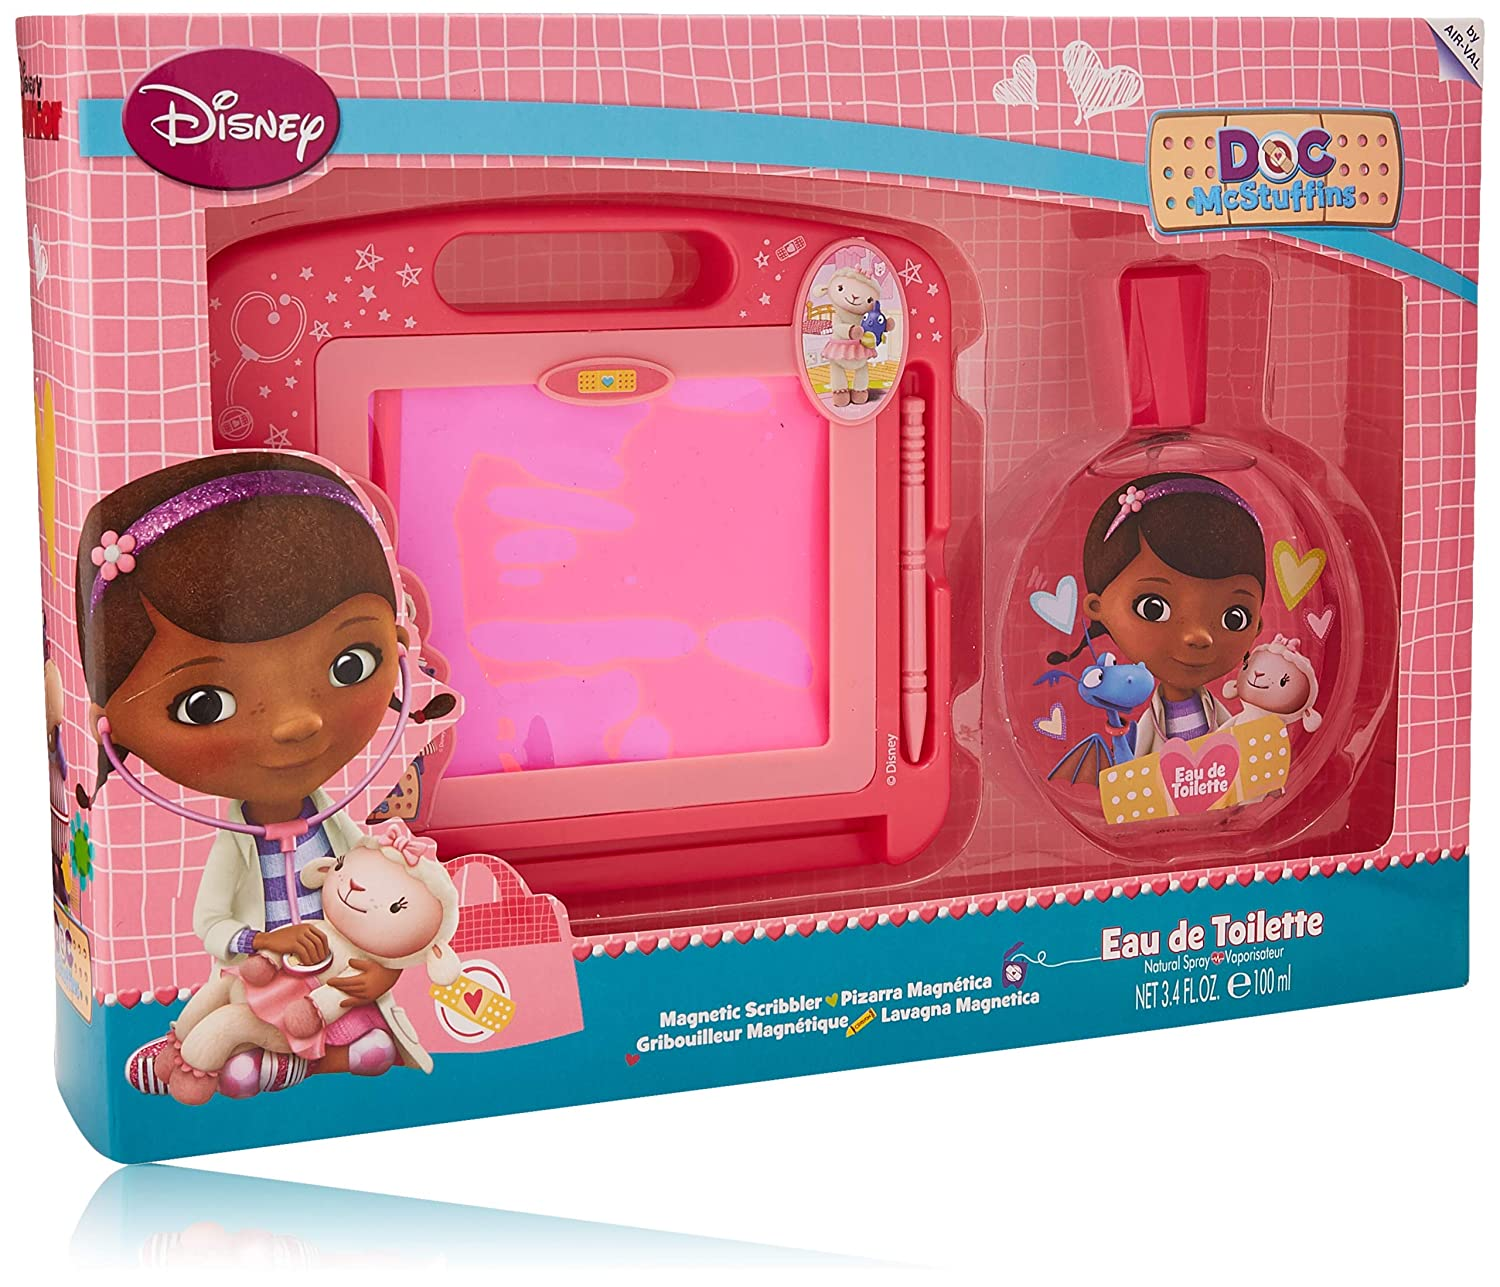 Amazon.com : Disney Doc Mcstuffins for Kids 2 Piece Gift Set : Beauty